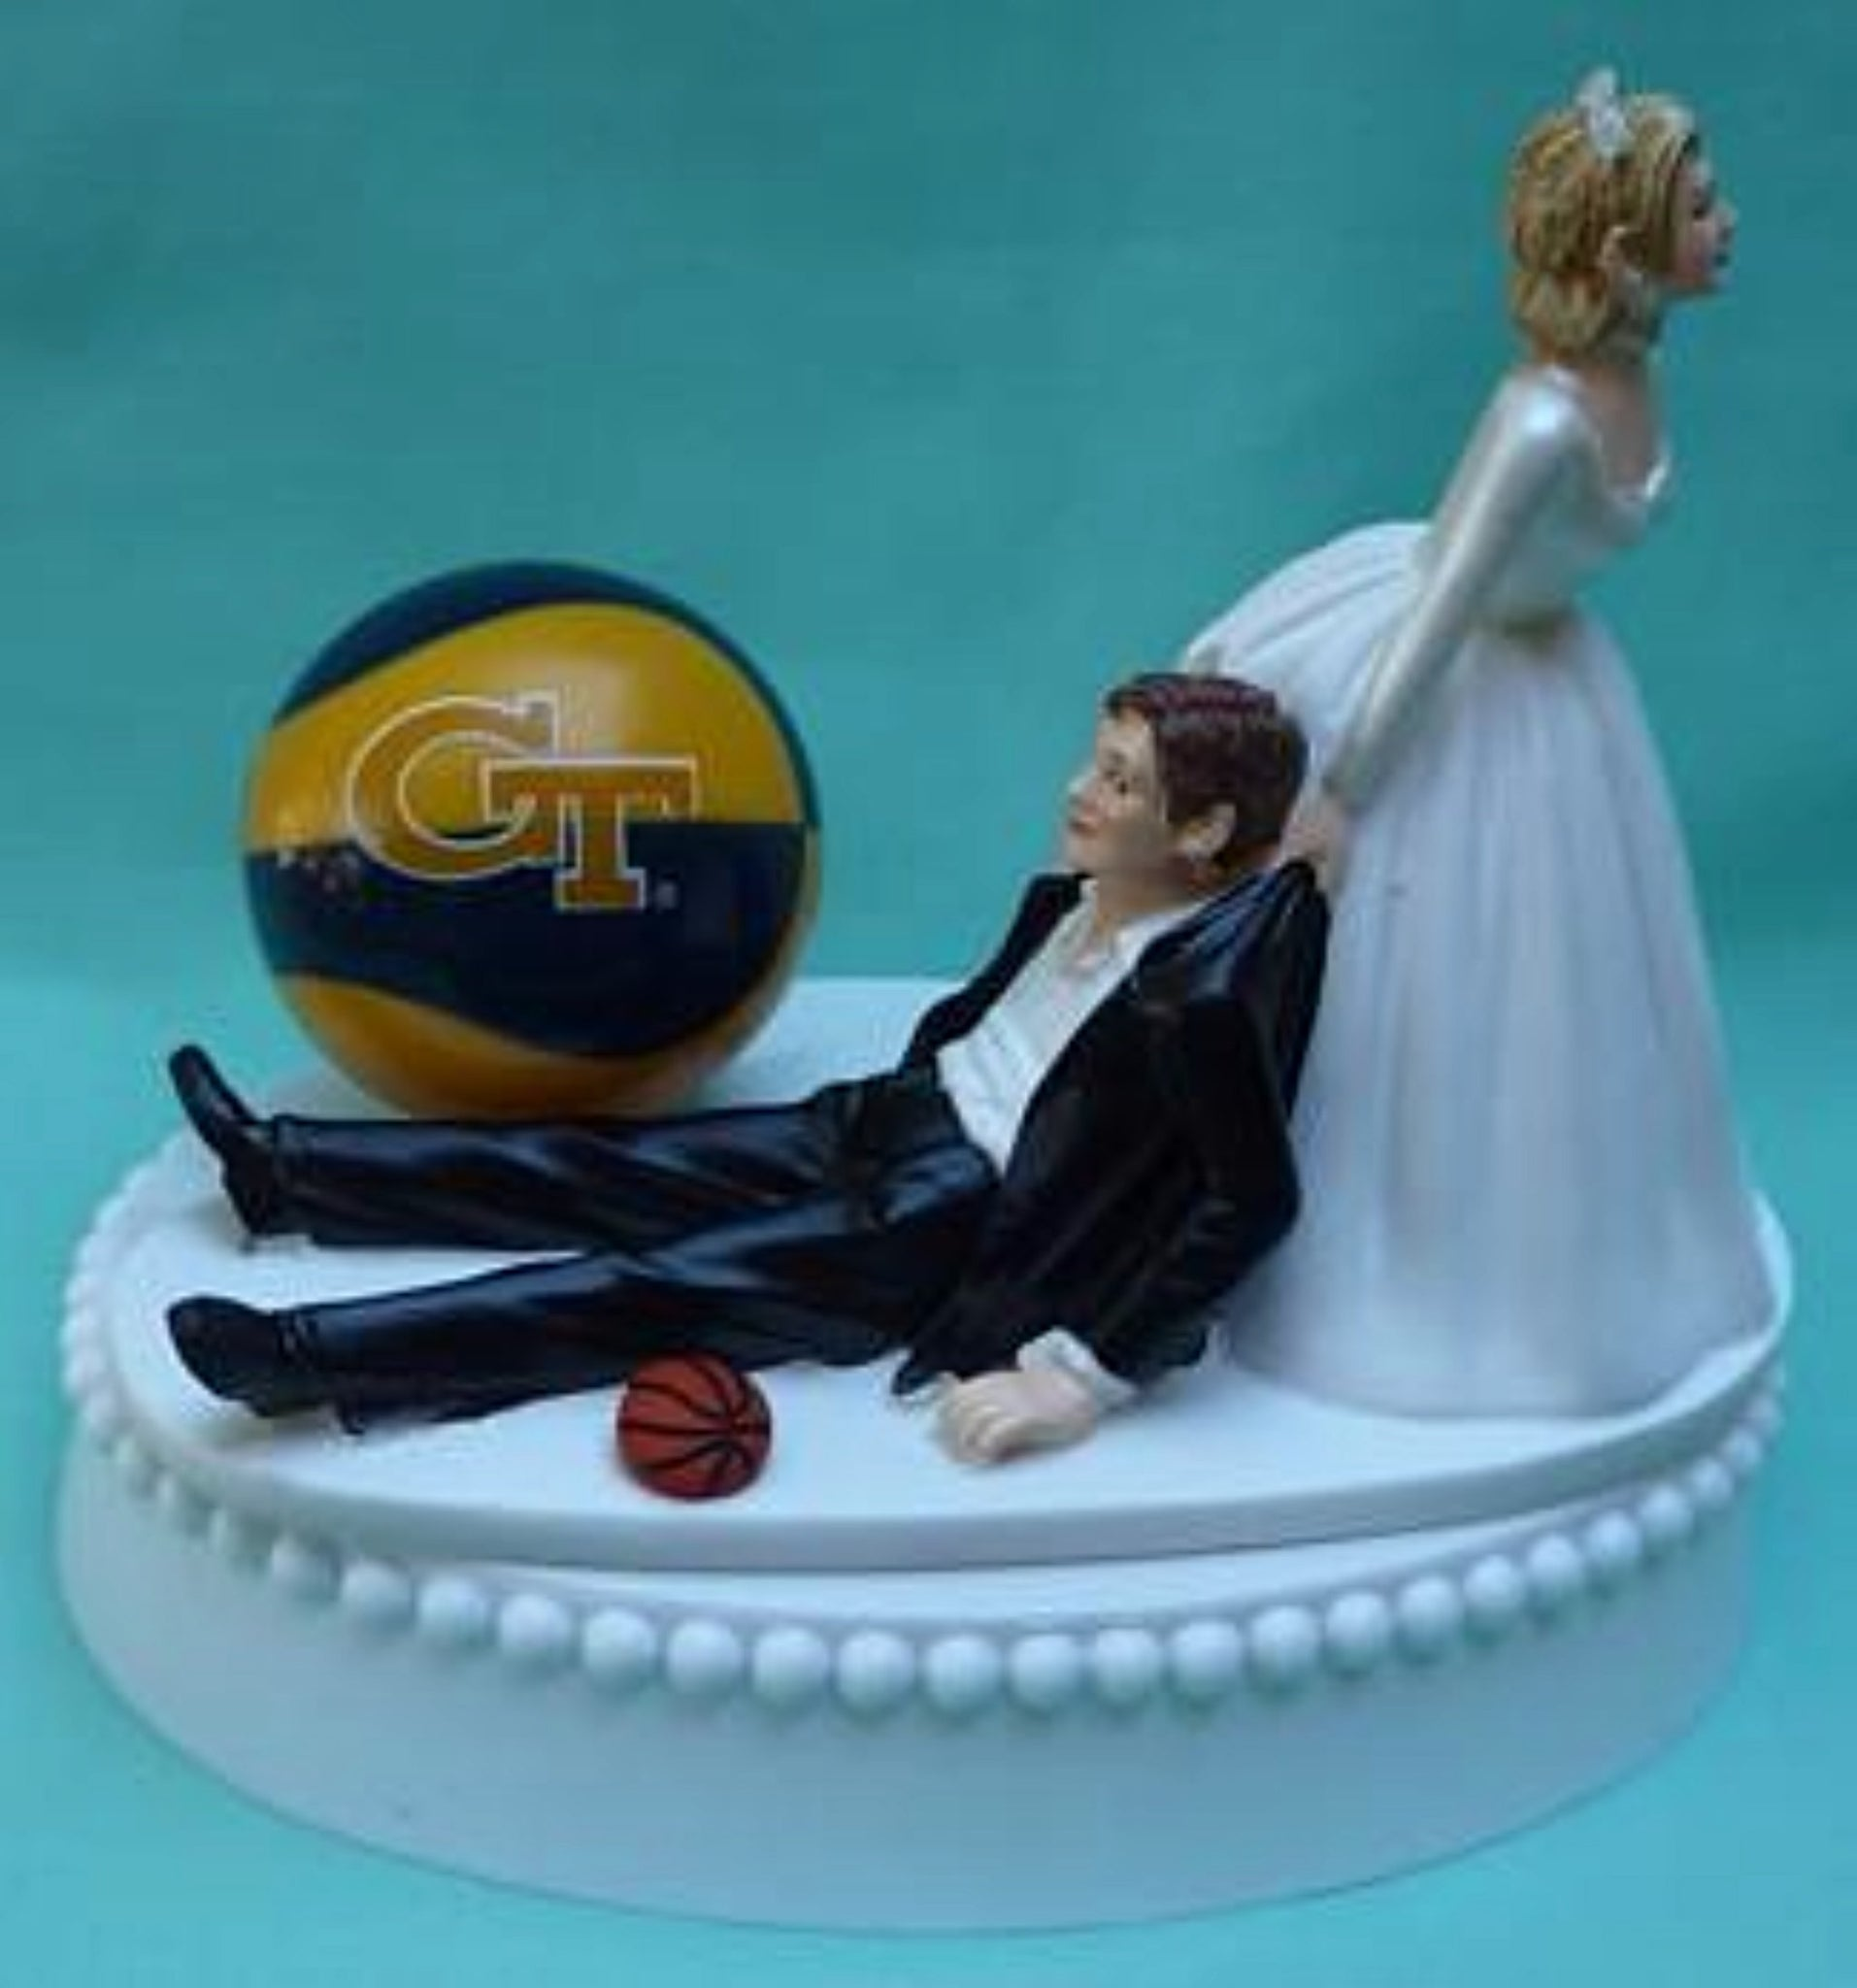 Georgia Tech basketball wedding cake topper Yellow Jackets sports funny bride groom humorous Fun Wedding Things